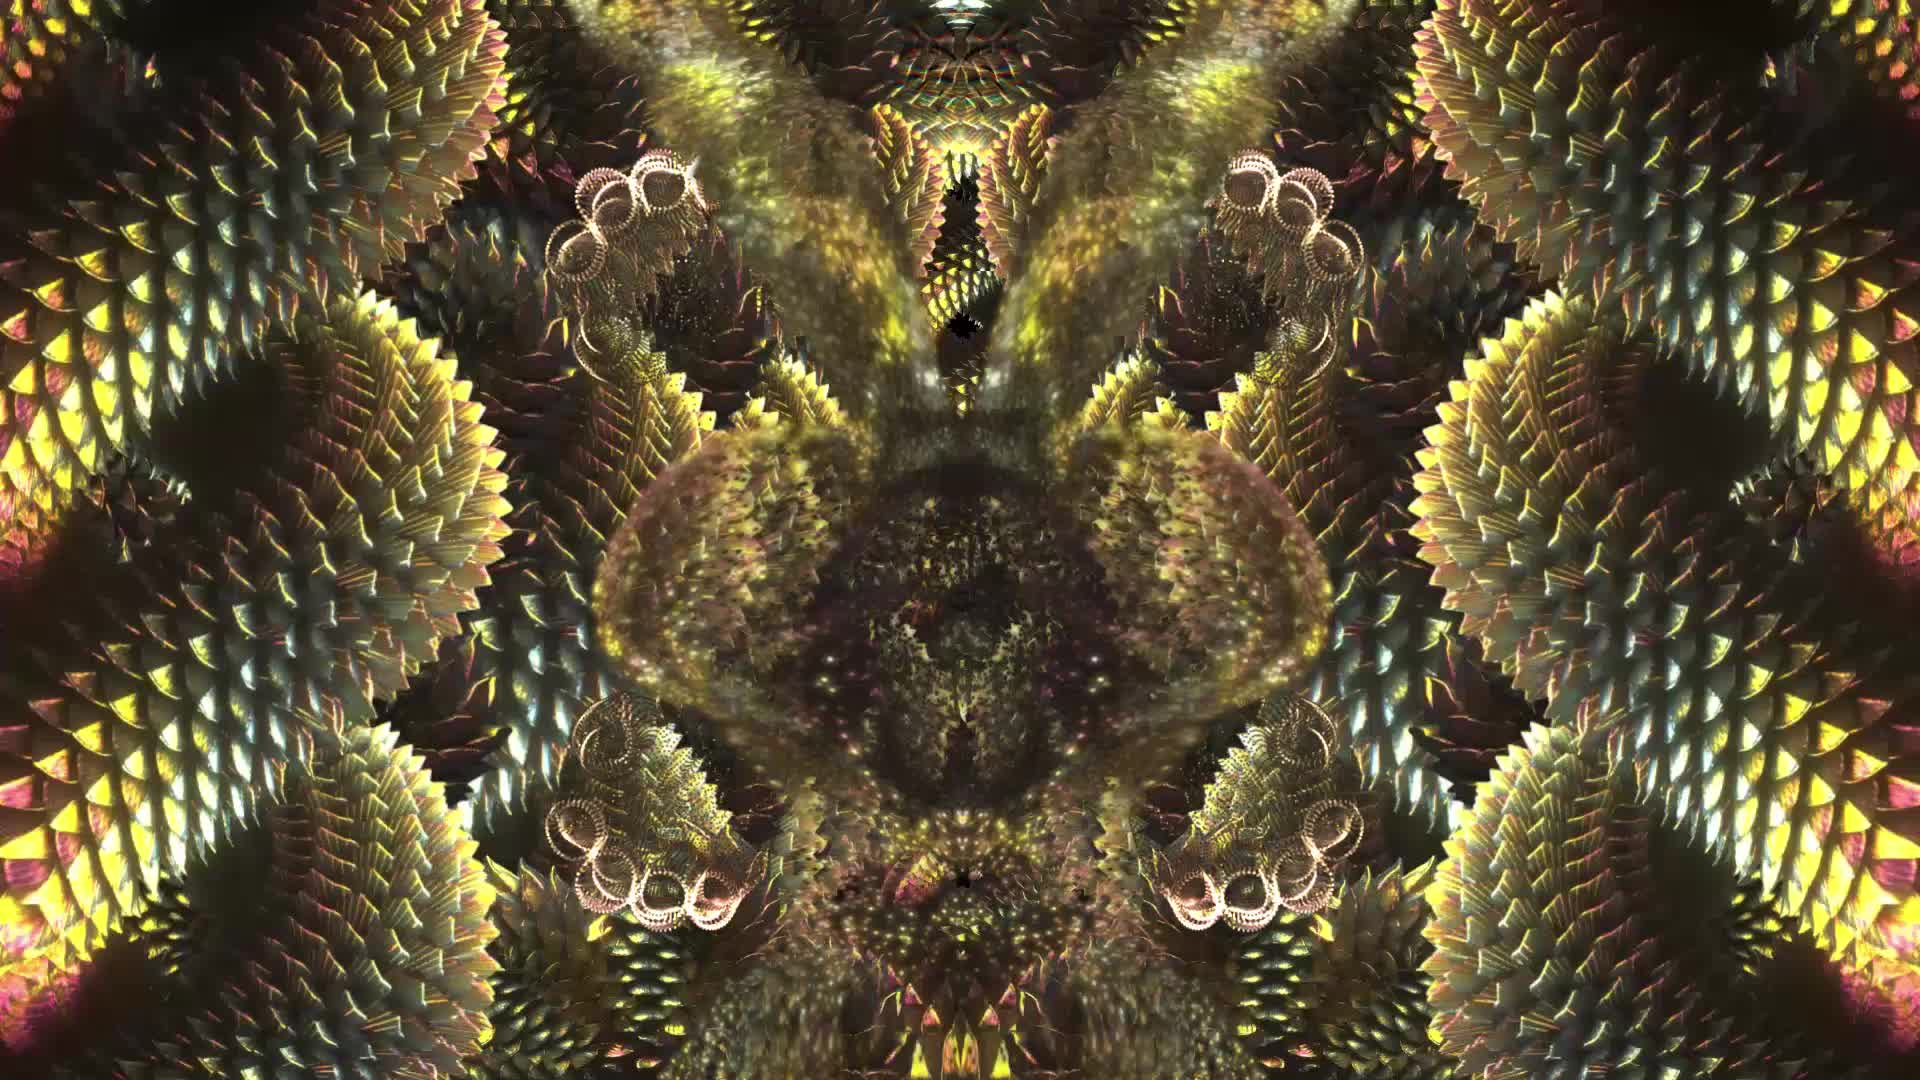 dmt trip, dmt visuals, psychedelic, psychedelic trip visuals, psychedelic visuals, psychedelics, symmetric vision, Whats with these bugs? (DMT) GIFs